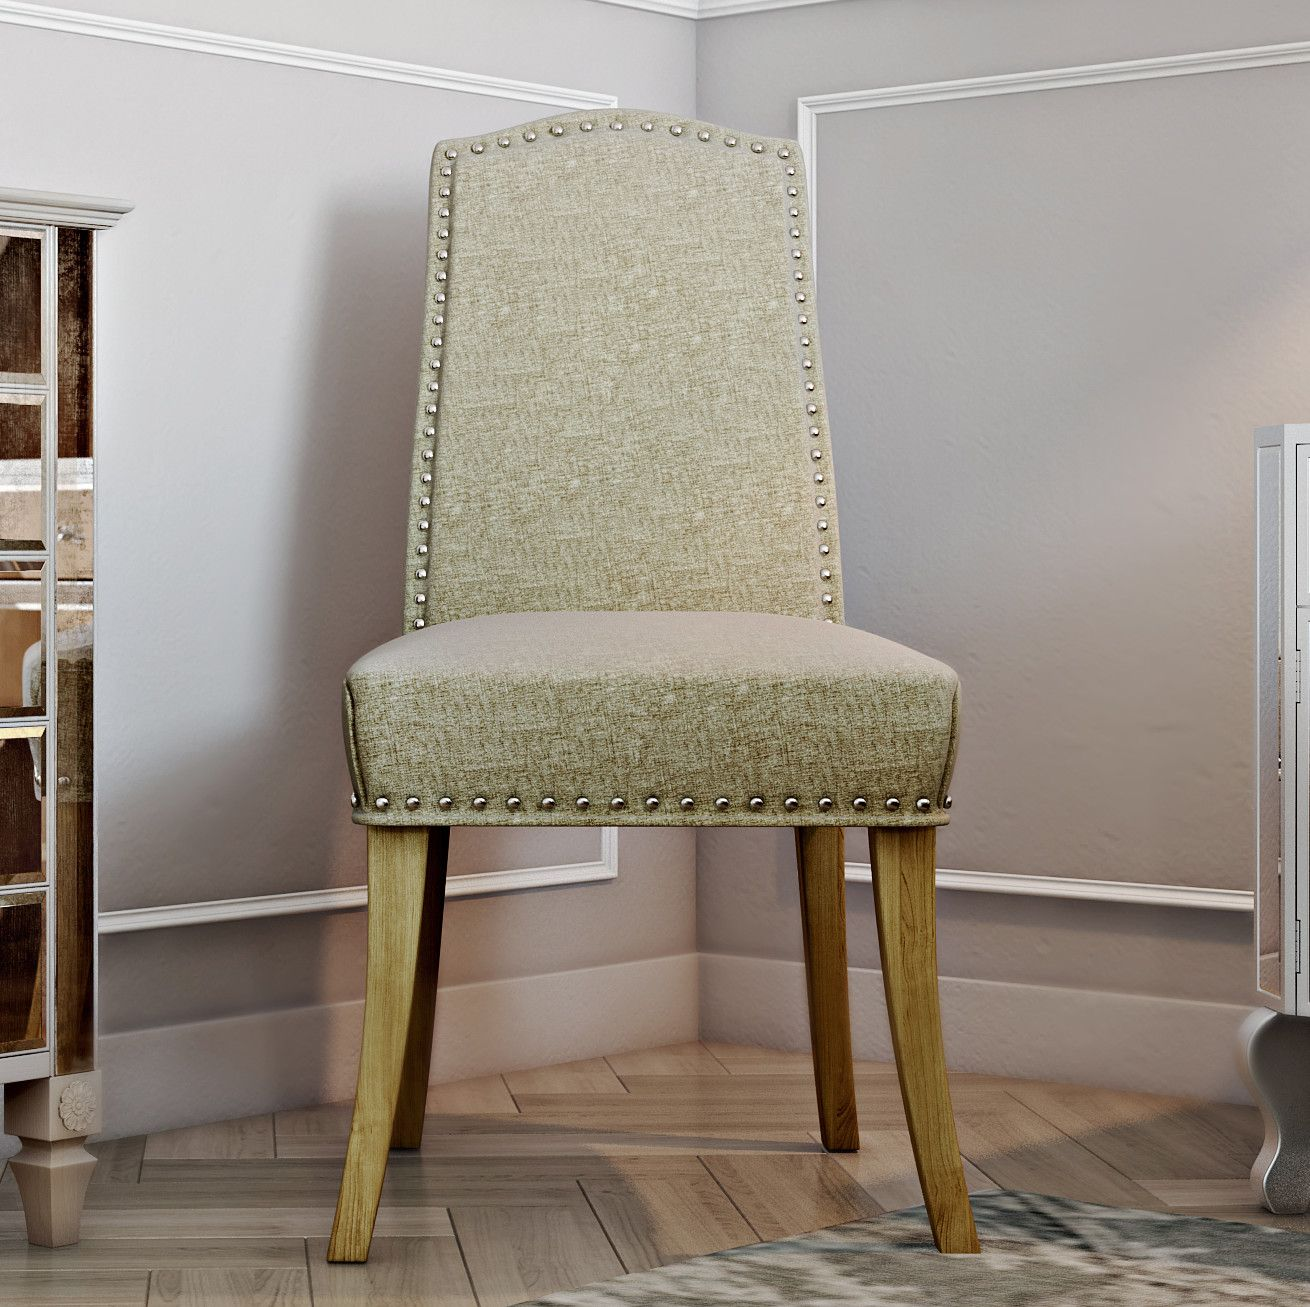 Fairmont Park Looe Solid Oak Upholstered Dining Chair & Reviews Magnificent Upholstered Dining Room Chairs Decorating Design